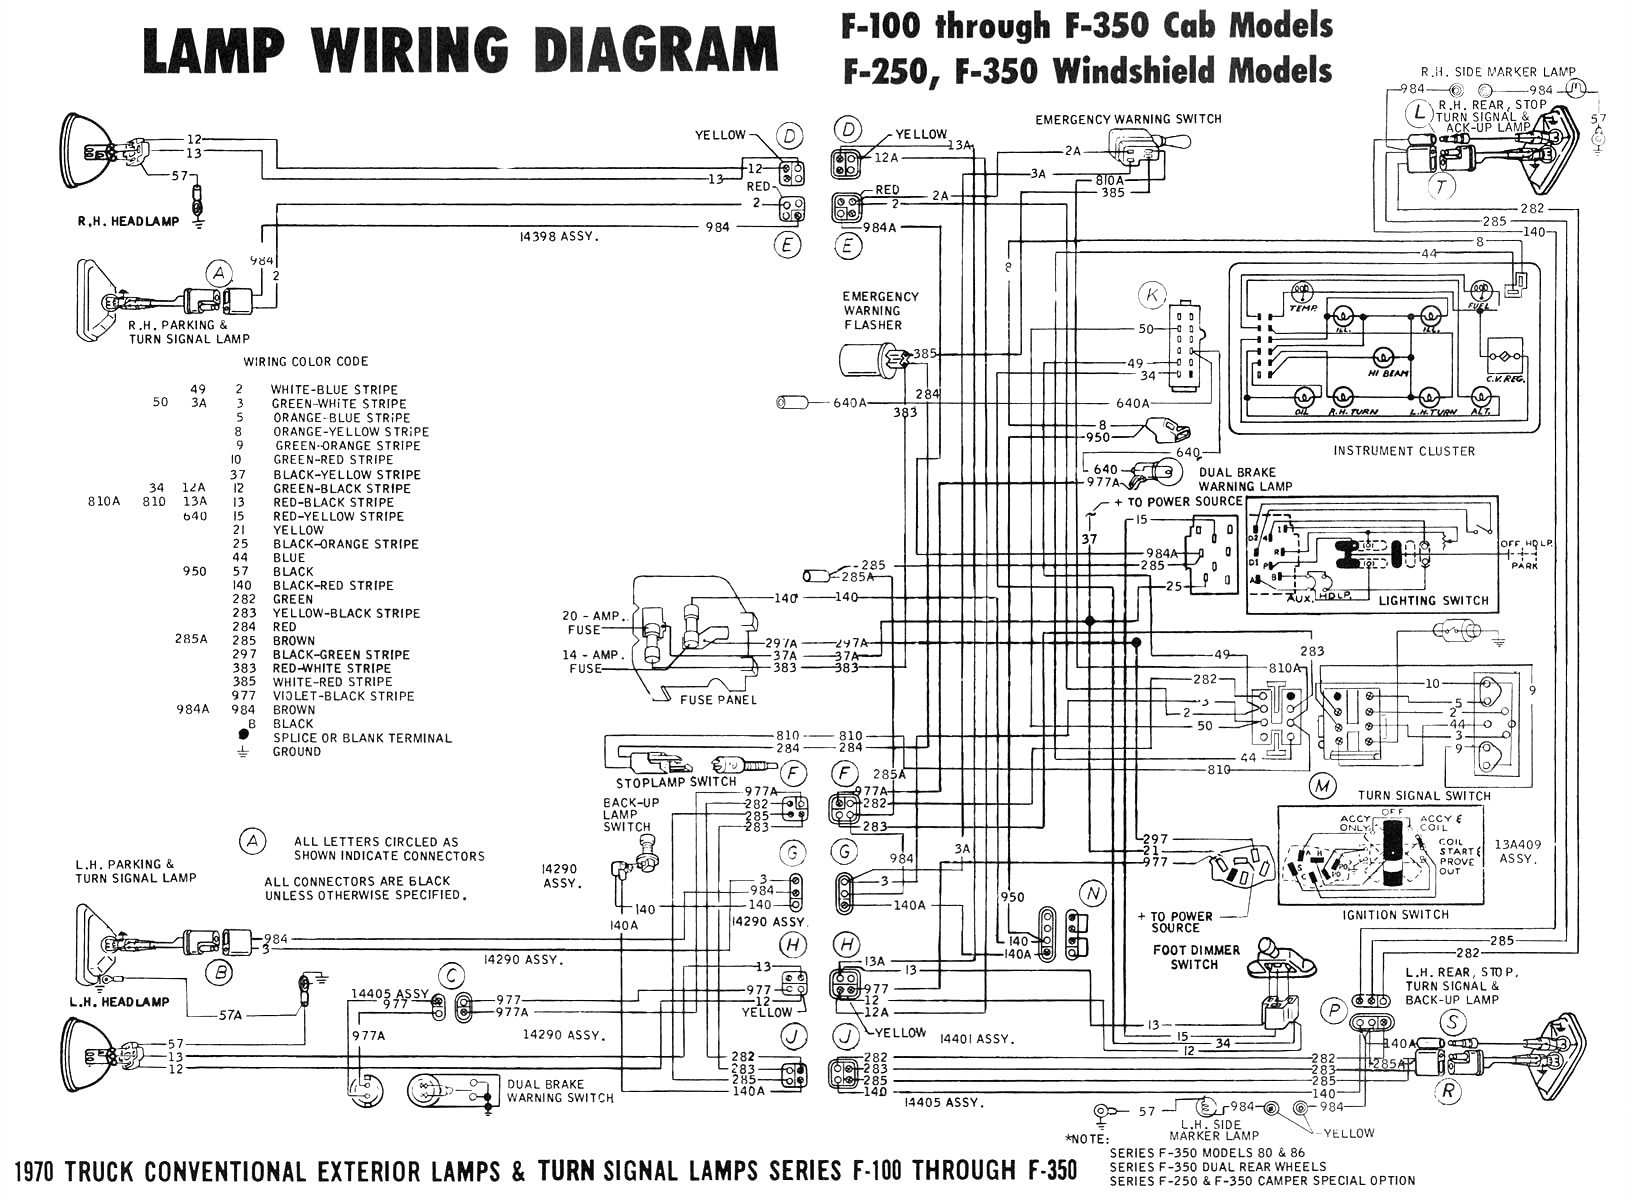 2006 kia sportage fuse box diagram wiring diagram blog 2000 ford expedition horn wiring as well